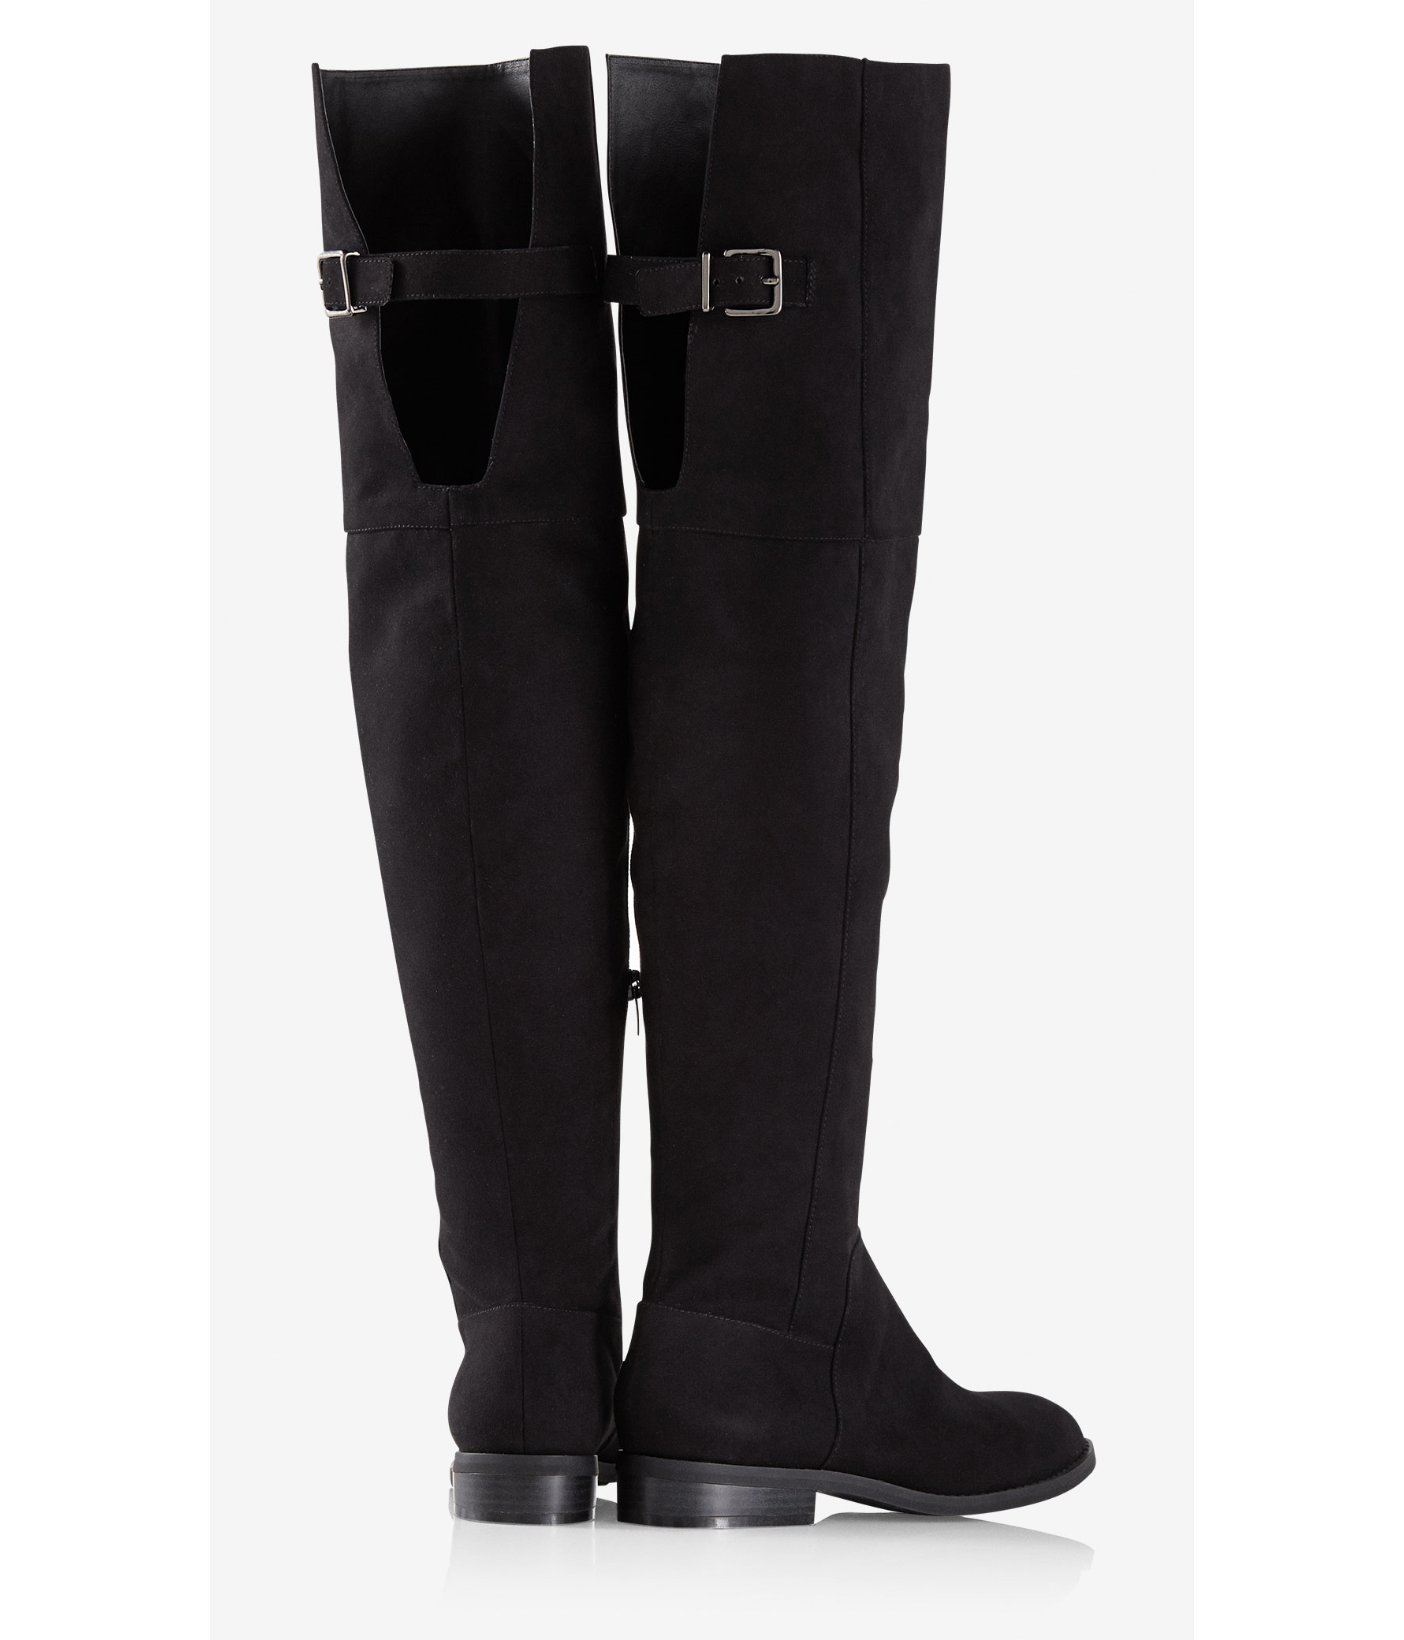 Express Faux Suede Over-the-knee Flat Boot in Black   Lyst